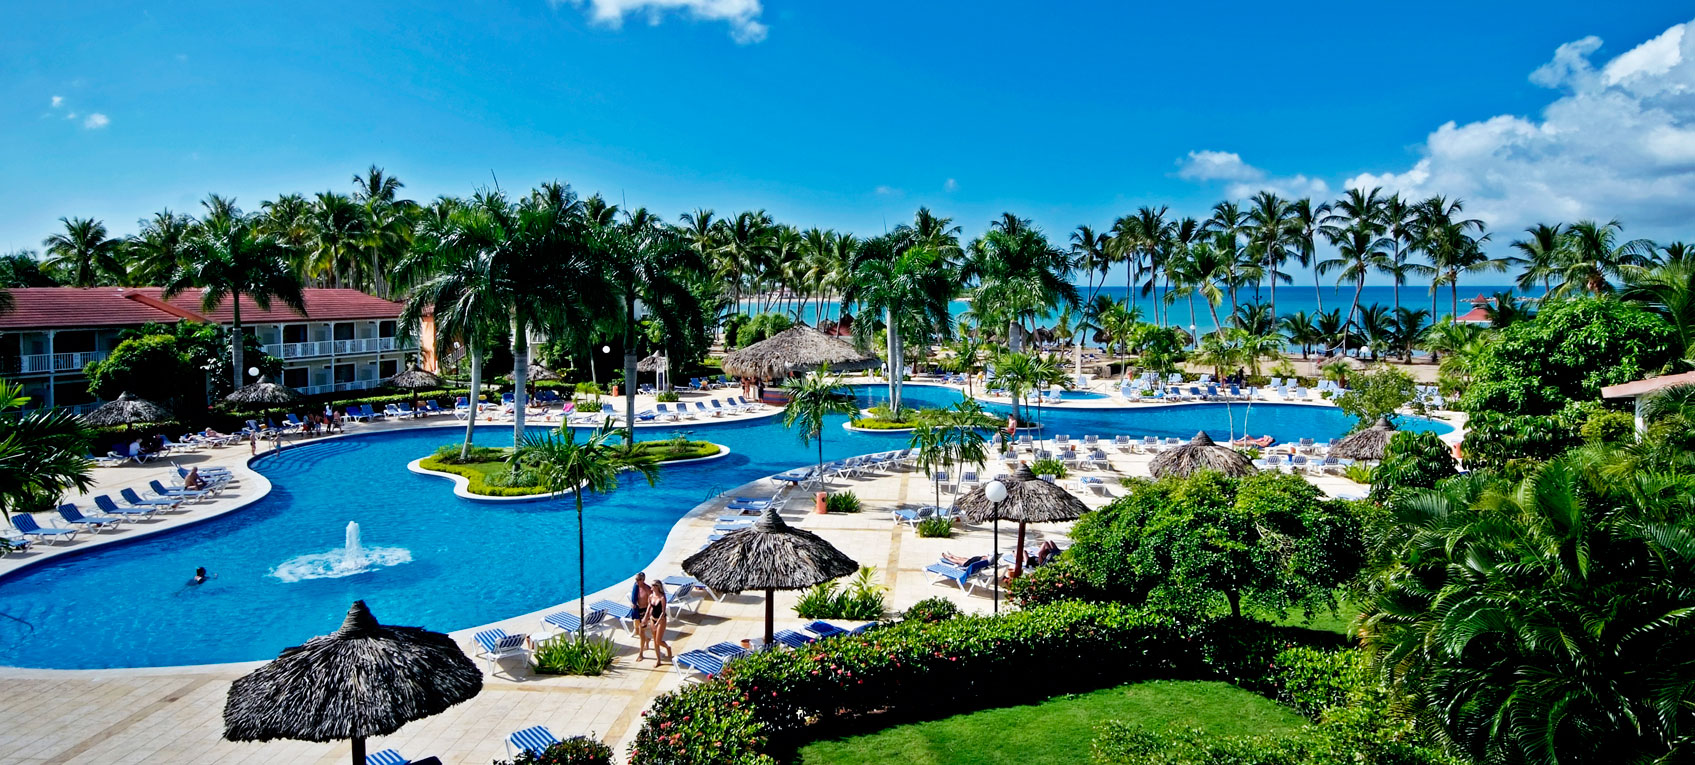 Dominican Republic Vacation Packages Resorts Hotels Autos Post